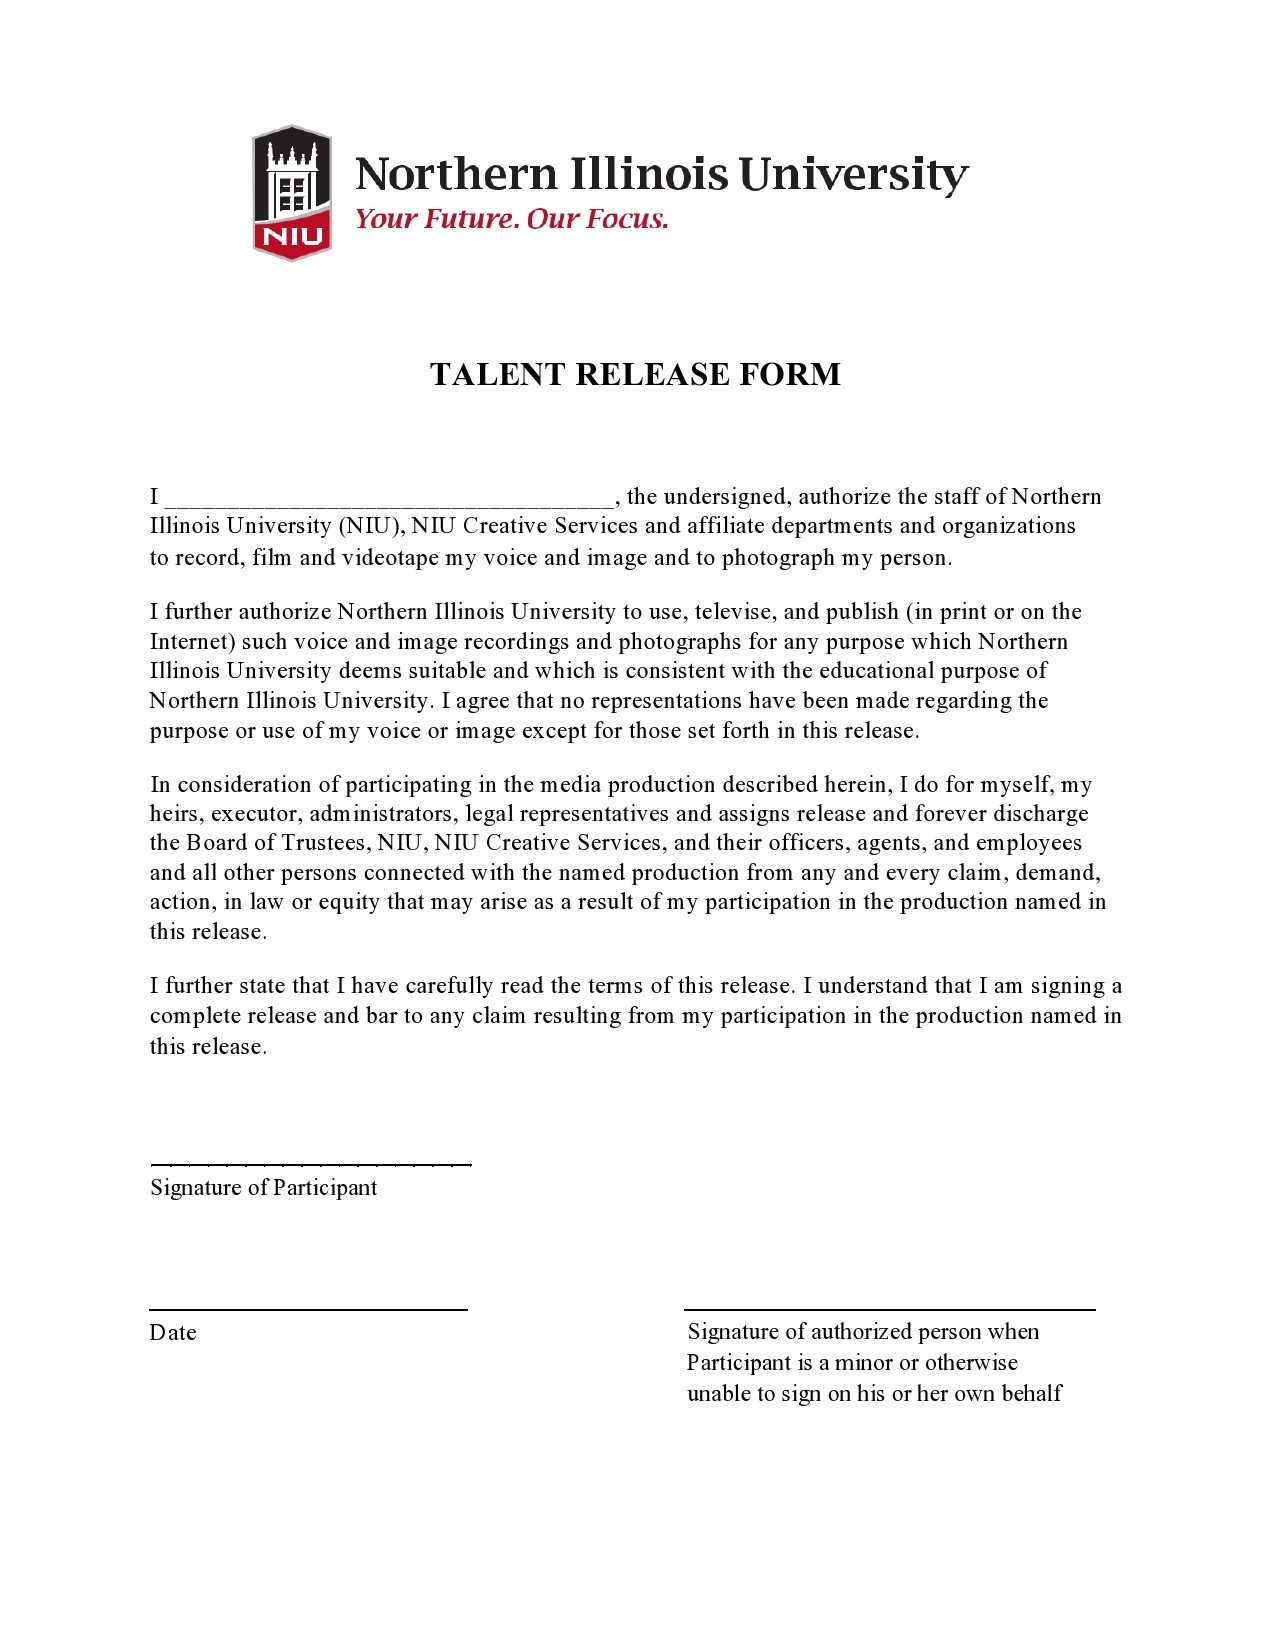 Free talent release form 41